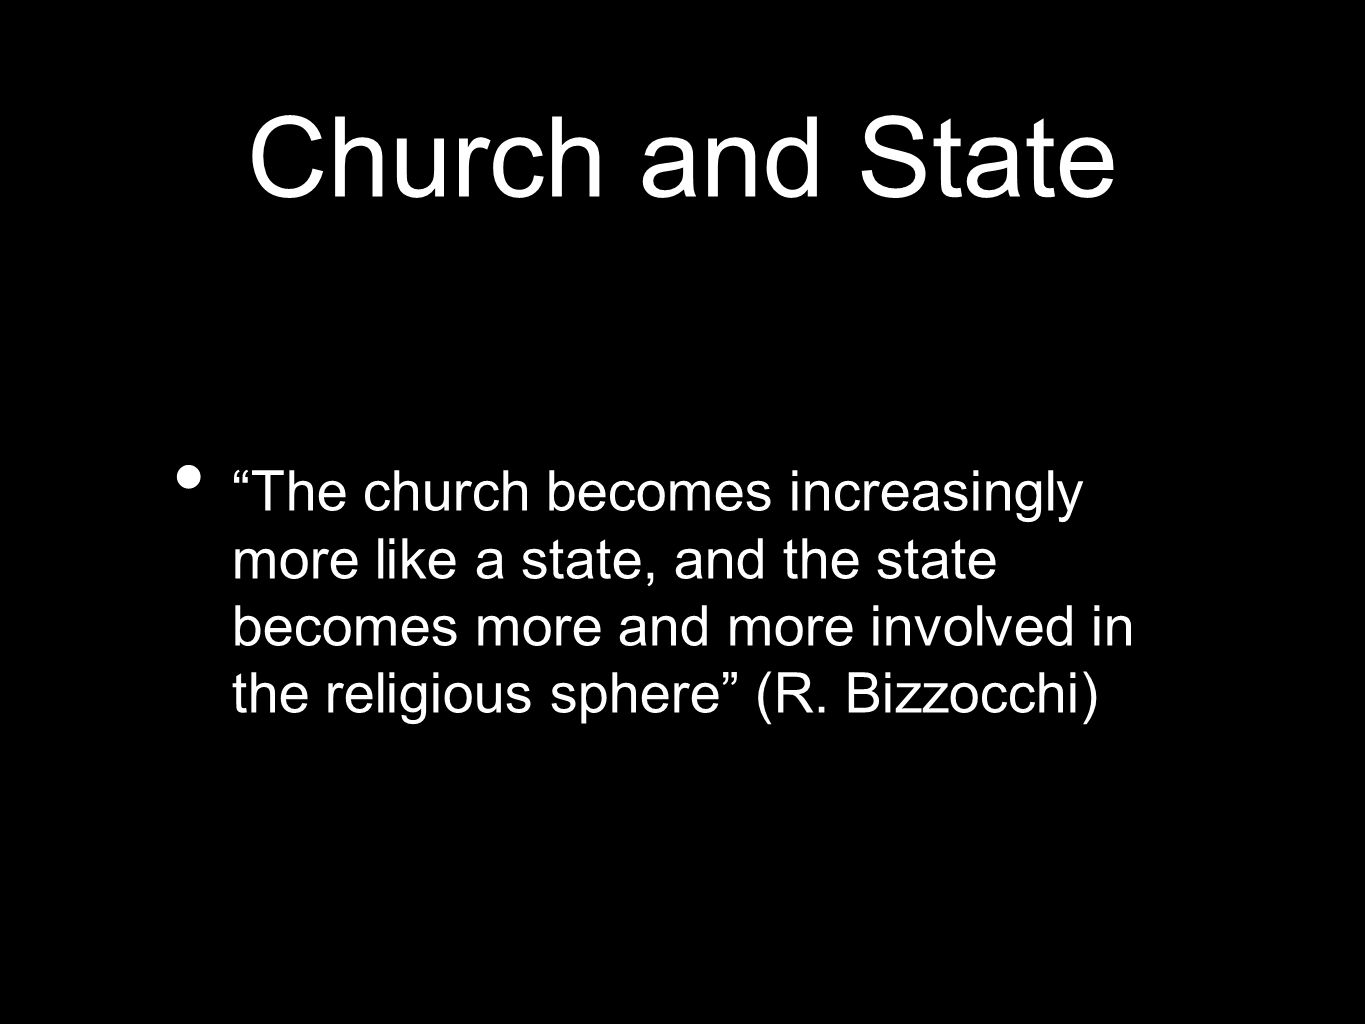 Church and State The church becomes increasingly more like a state, and the state becomes more and more involved in the religious sphere (R. Bizzocchi